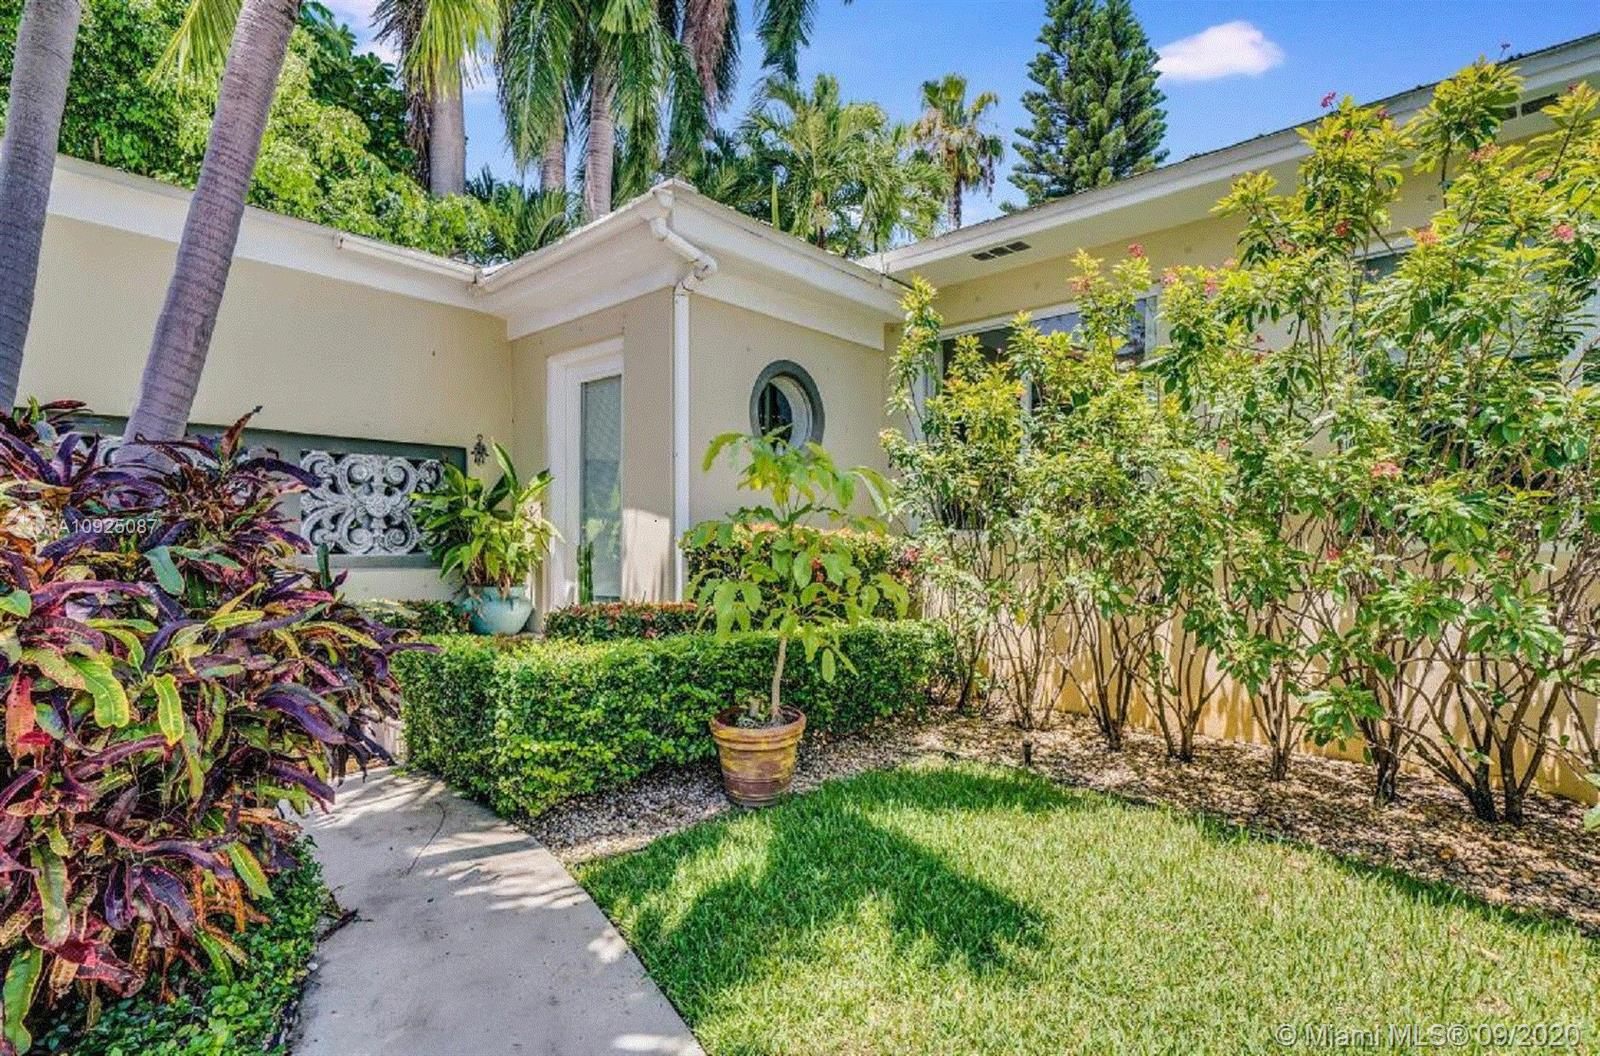 Details for 1339 Venetian Way, Miami, FL 33139